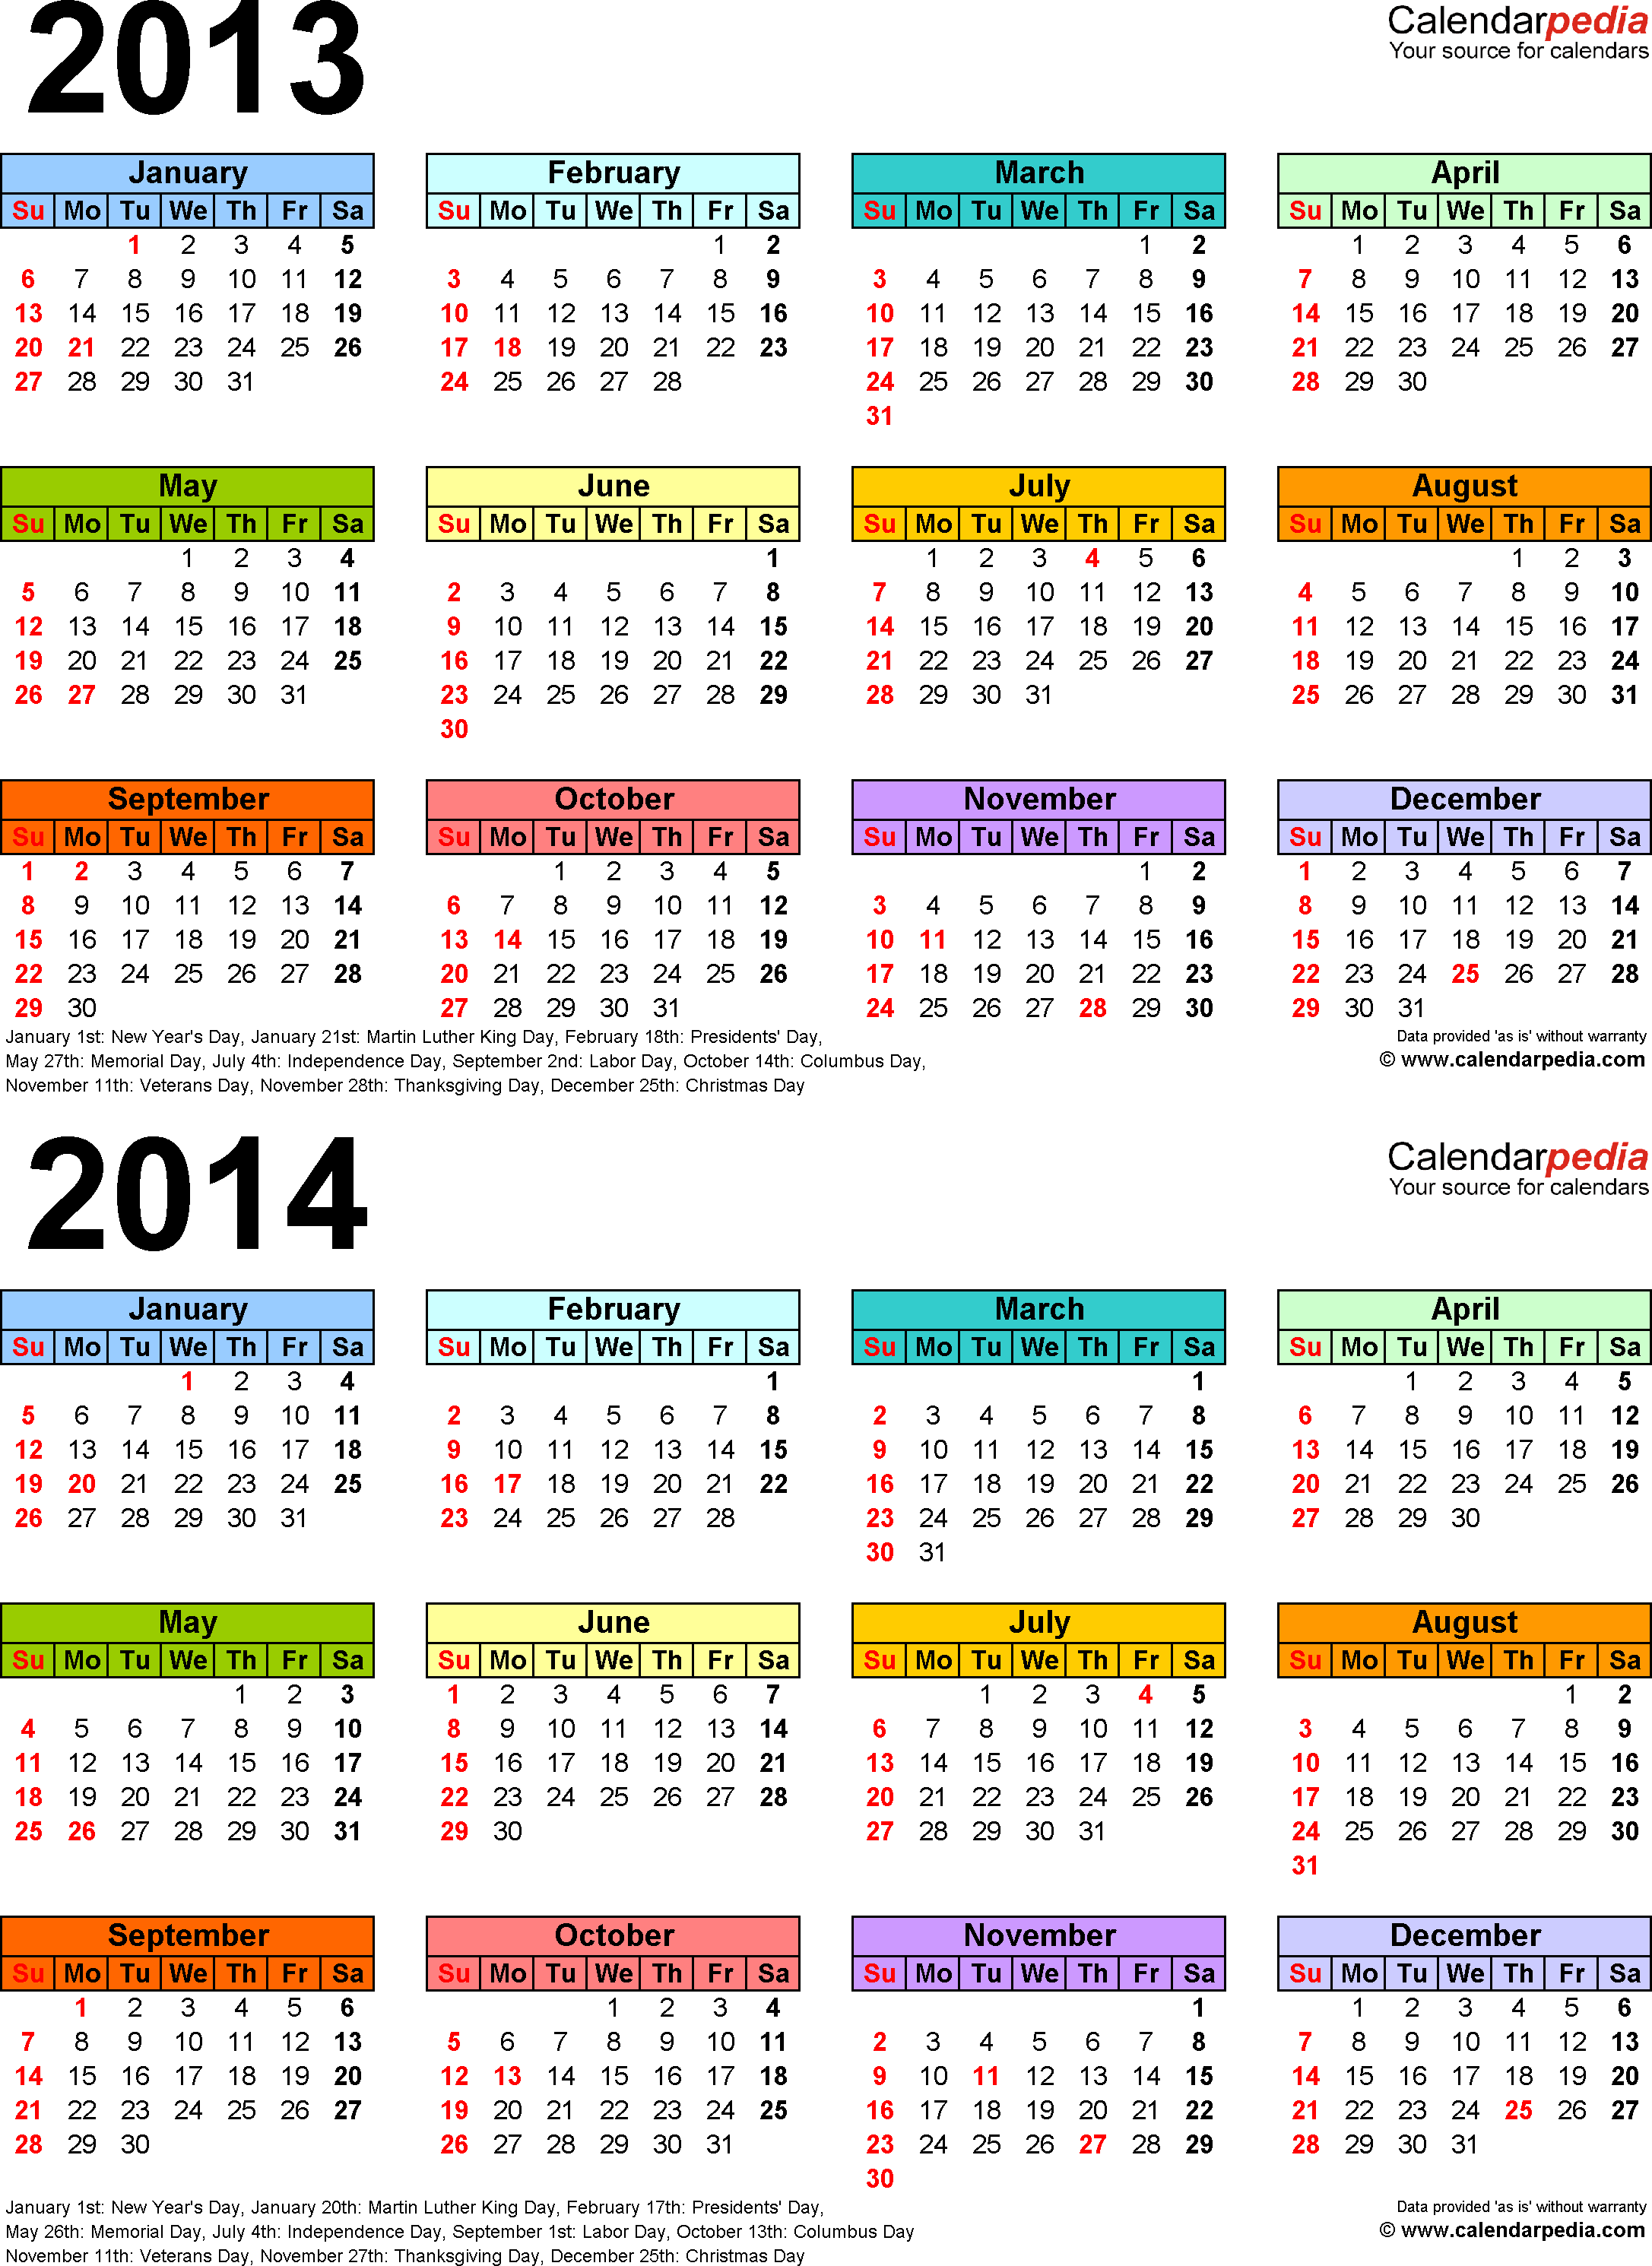 yearly planning calendar template 2014 - 2013 2014 calendar free printable two year word calendars